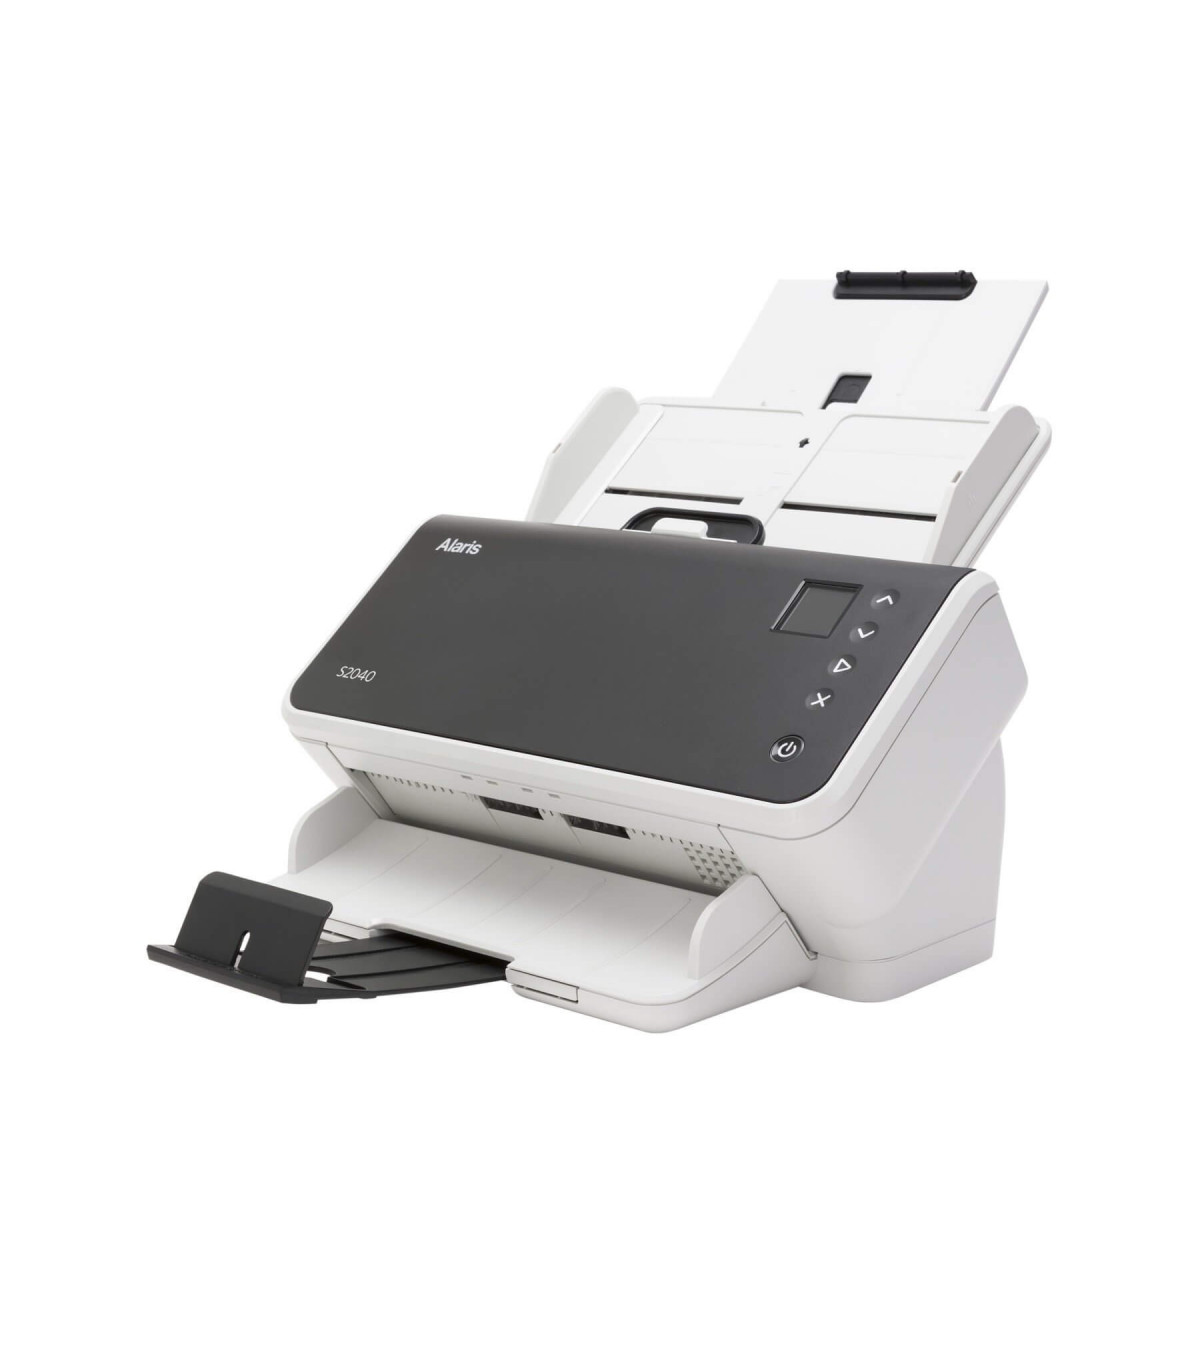 Máy scan, scanner Kodak Alaris S2040 (40ppm, 5000ppd, A4, USB)  | Workgroup  | Kodak  | khuetu.vn